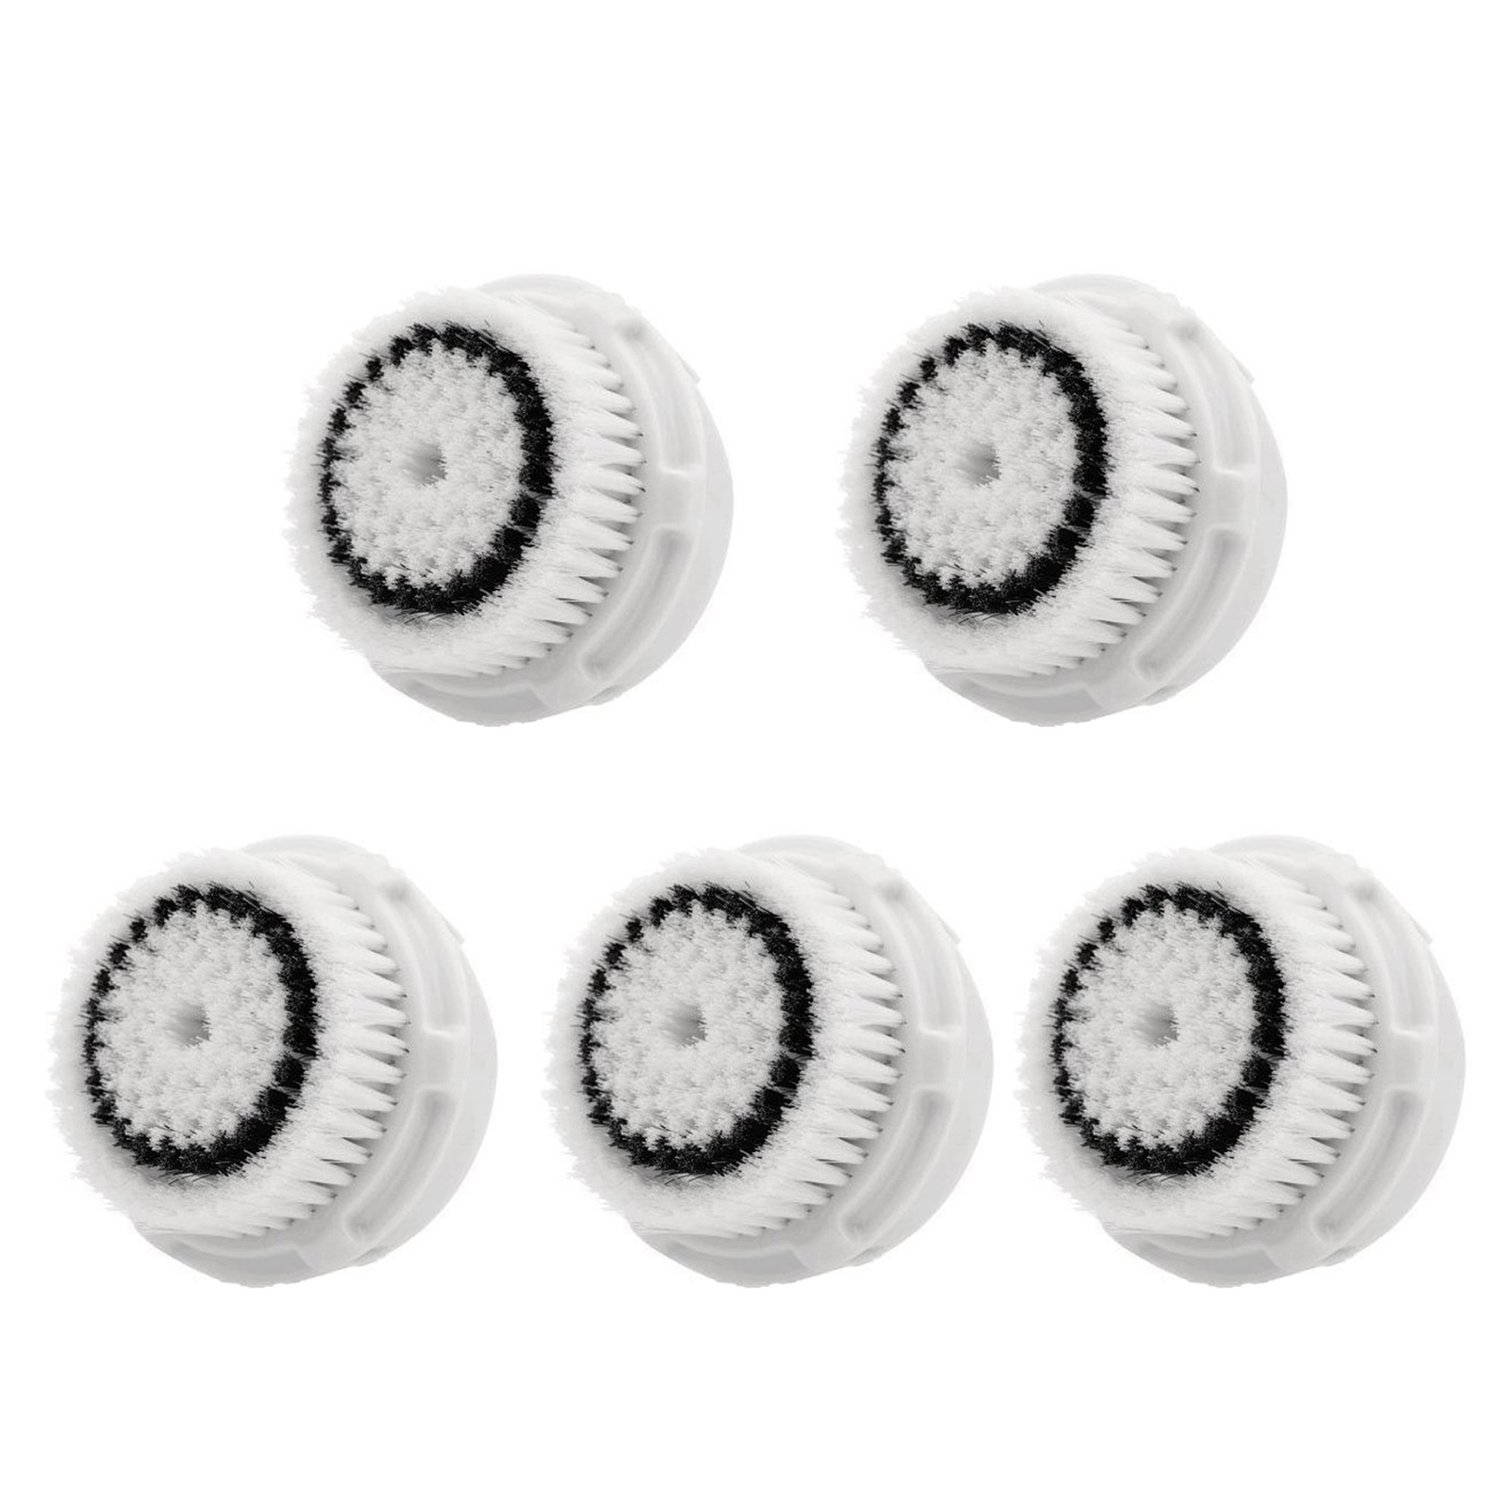 LSQtronics Sensitive Facial Brush Heads for Clarisonic. Face Cleansing Brush Heads for Daily Skin Care. Compatible with Clarisonic MIA, MIA 2, ARIA, PRO and PLUS Cleansing Systems. (5-Pack Sensitive Brush Head)